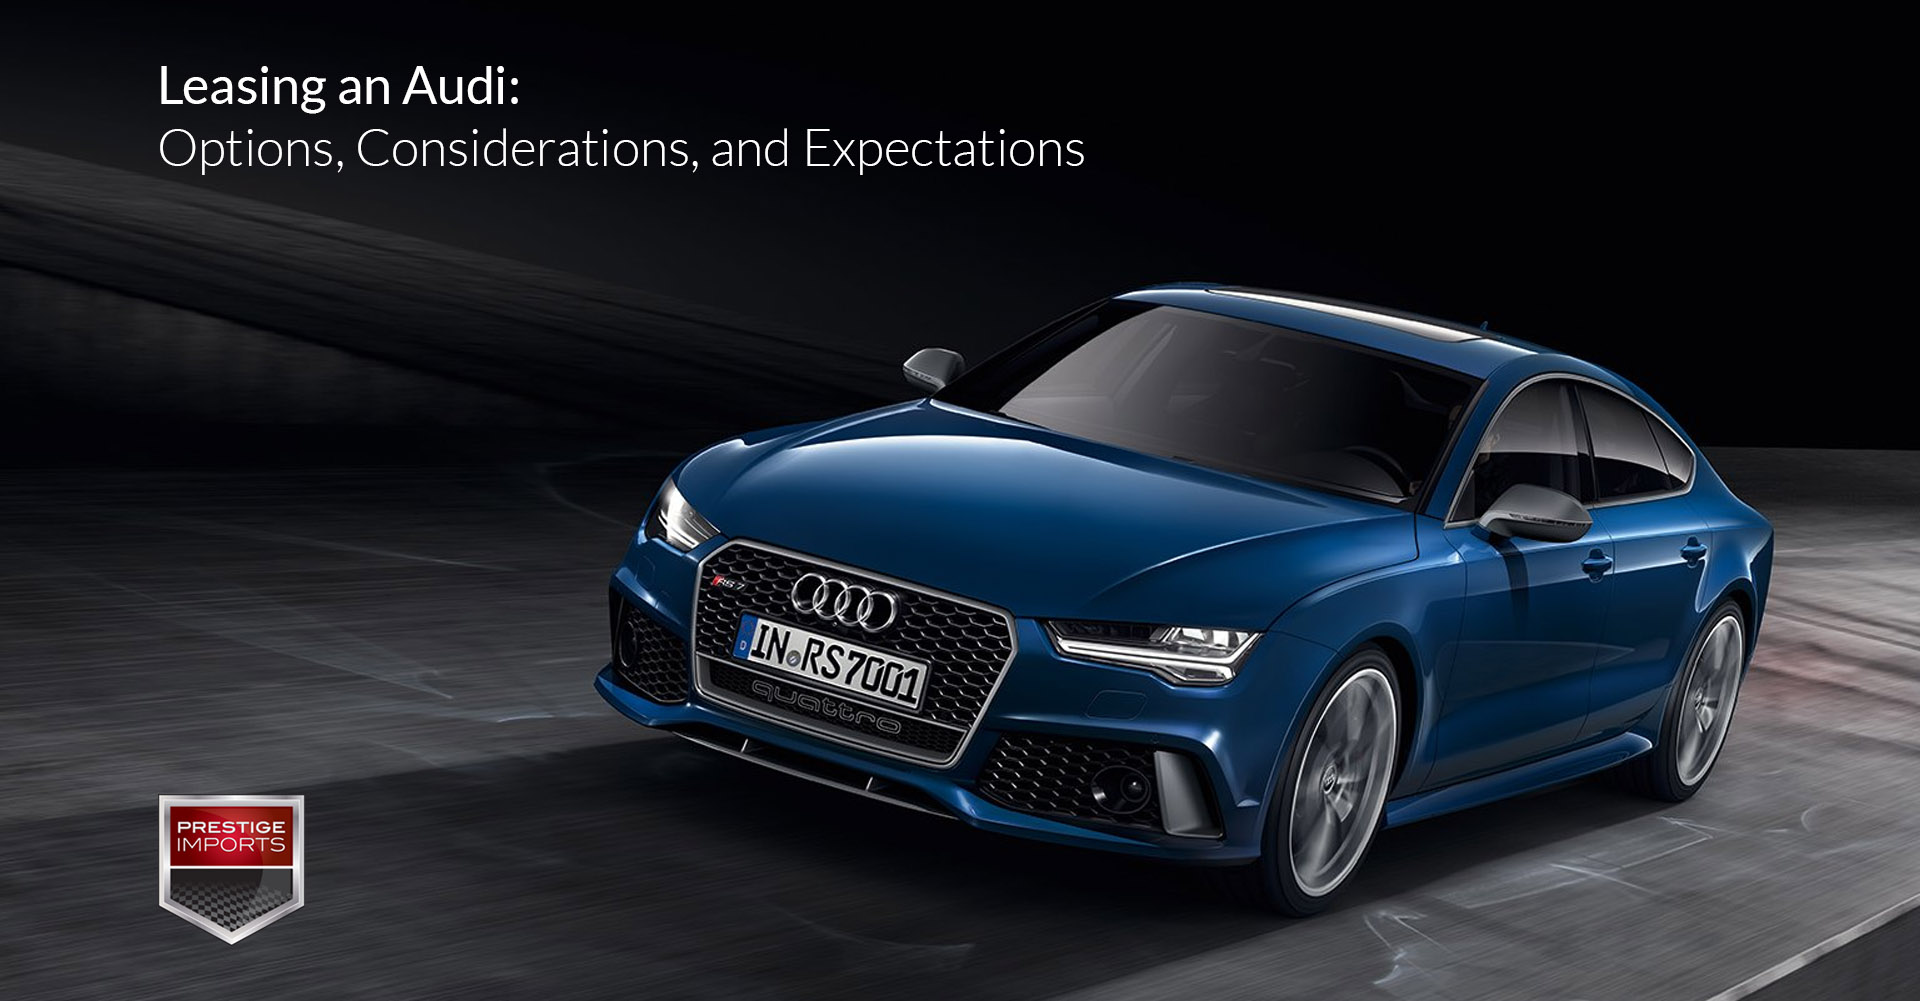 Leasing An Audi Options Considerations And Expectations